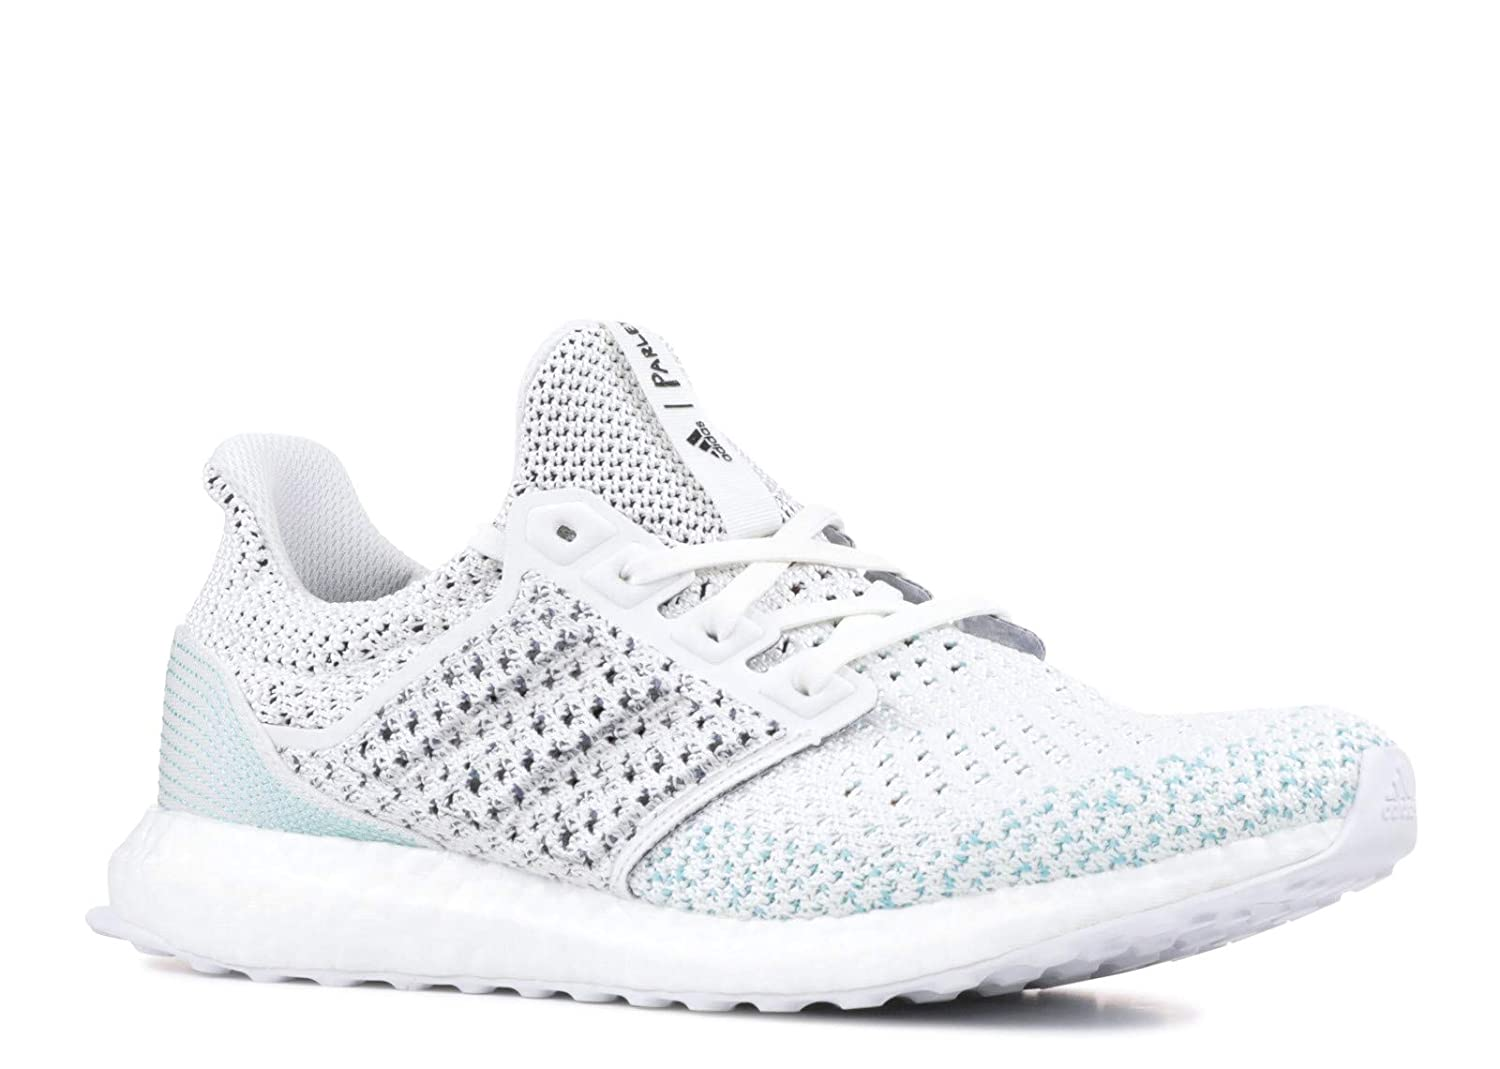 Cloud White-bluee Spirit Adidas Ultraboost Clima Parley LTD shoes Men's Running